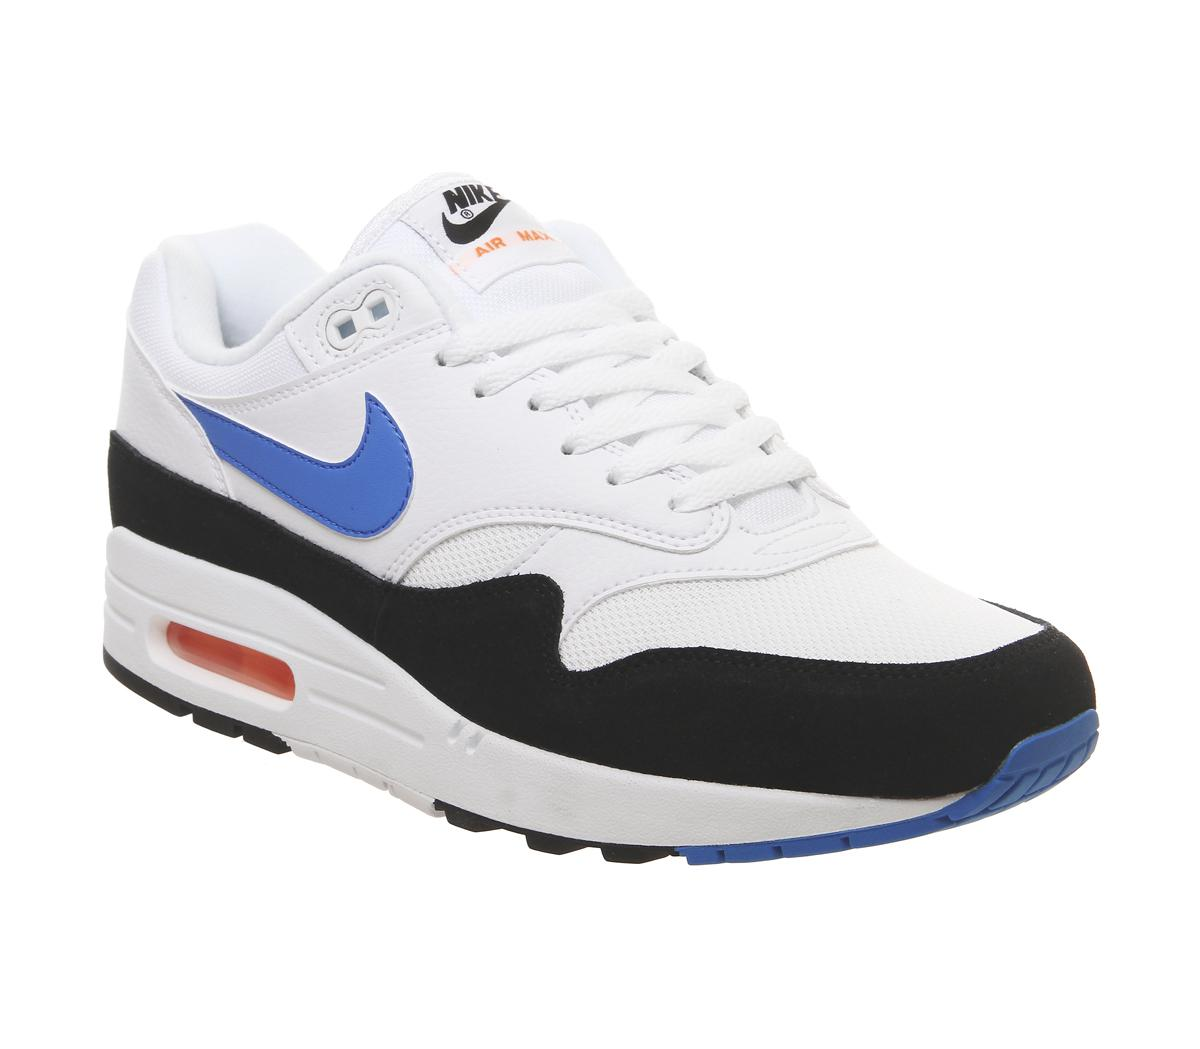 outlet store ff1af e8fdd Nike Air Max 1 Trainers White Photo Blue Total Orange Black - His ...